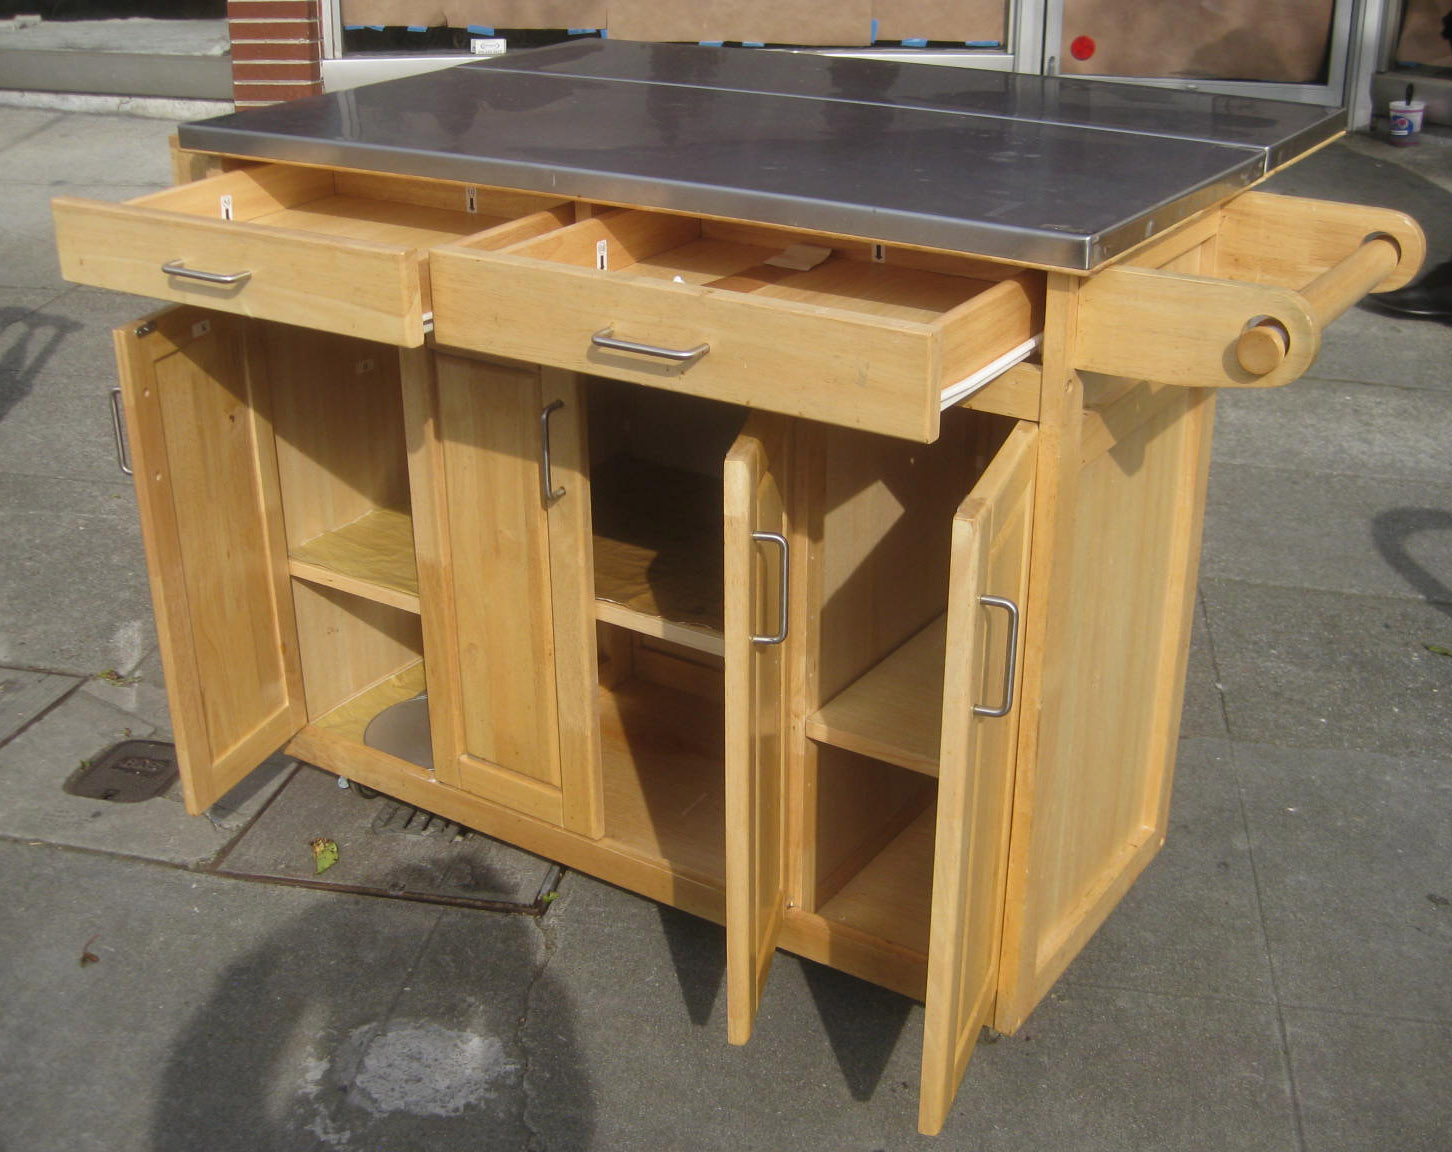 Kitchen Mobile Island Cabinets Pittsburgh Uhuru Furniture And Collectibles Sold